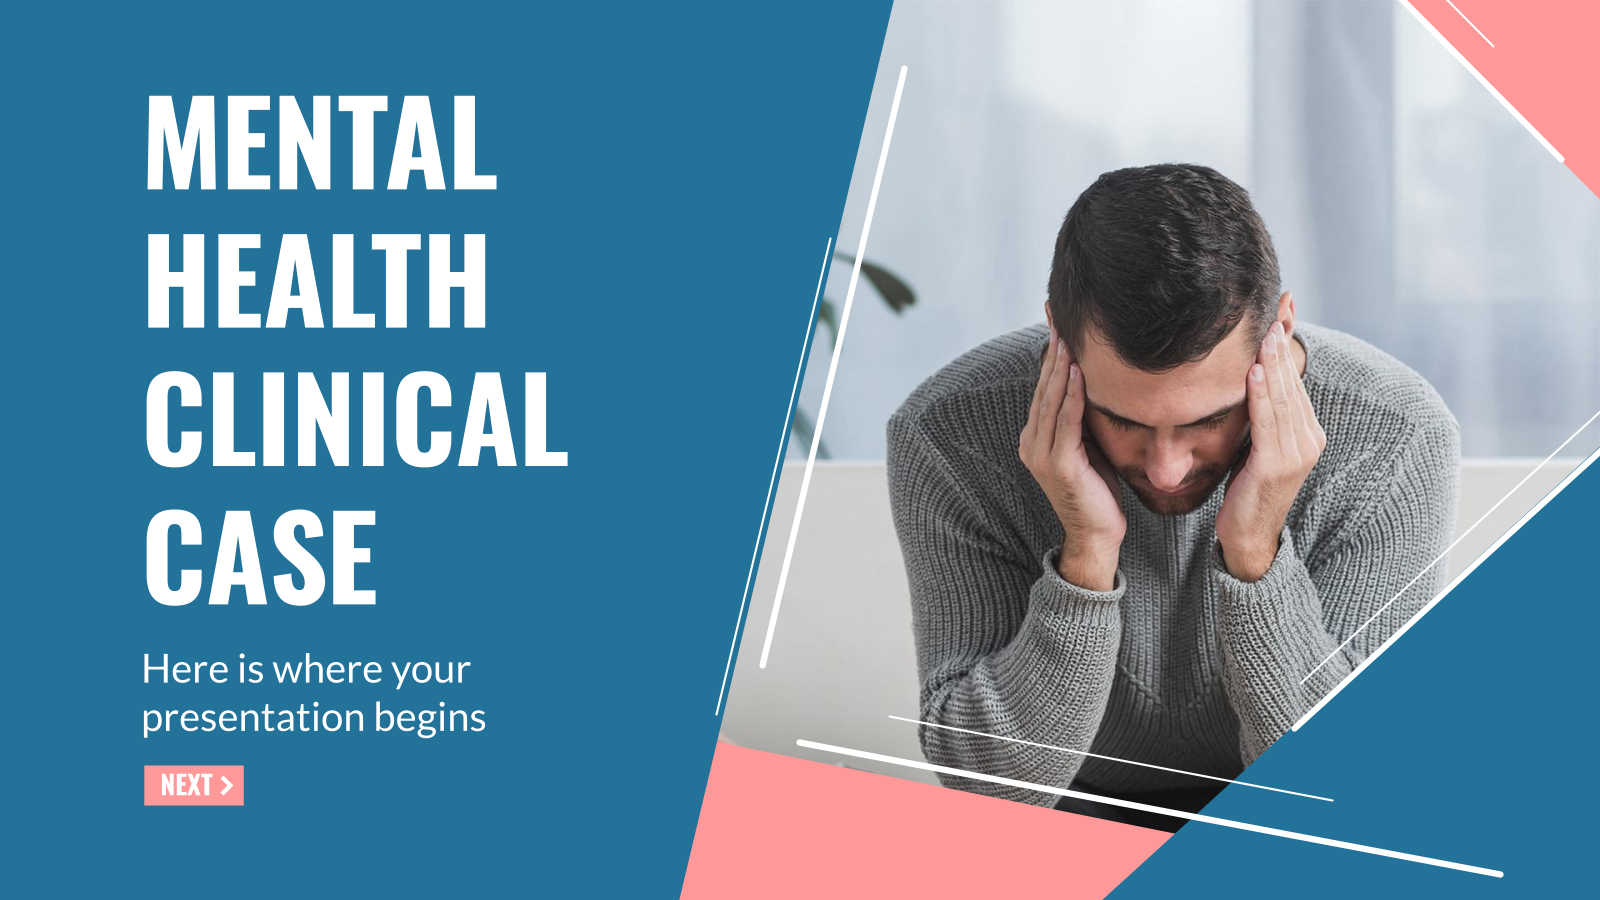 Mental Health Clinical Case presentation template